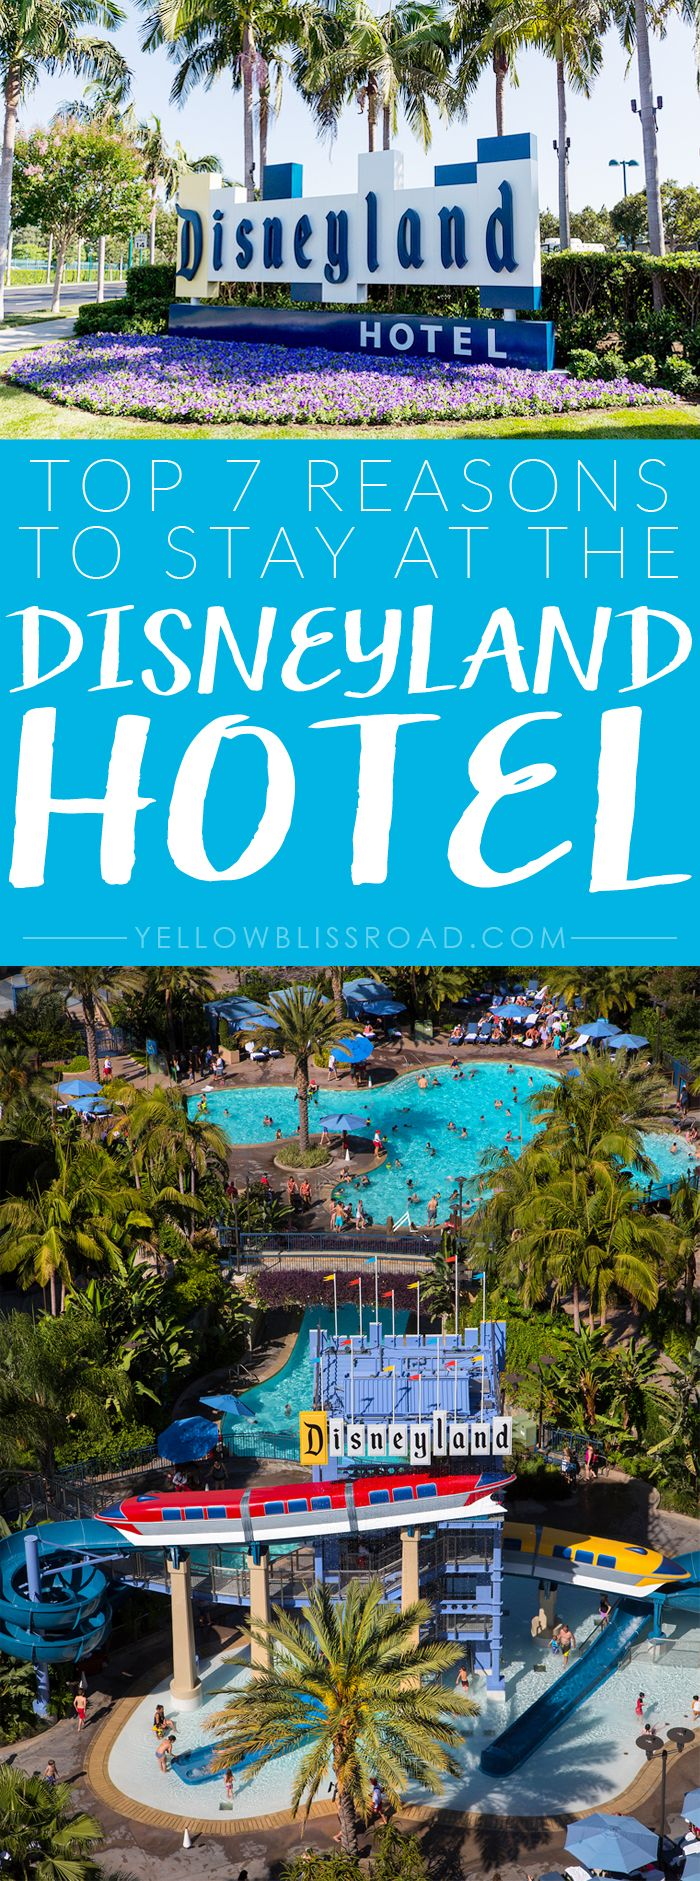 Top 7 Reasons to Stay at the Disneyland Hotel